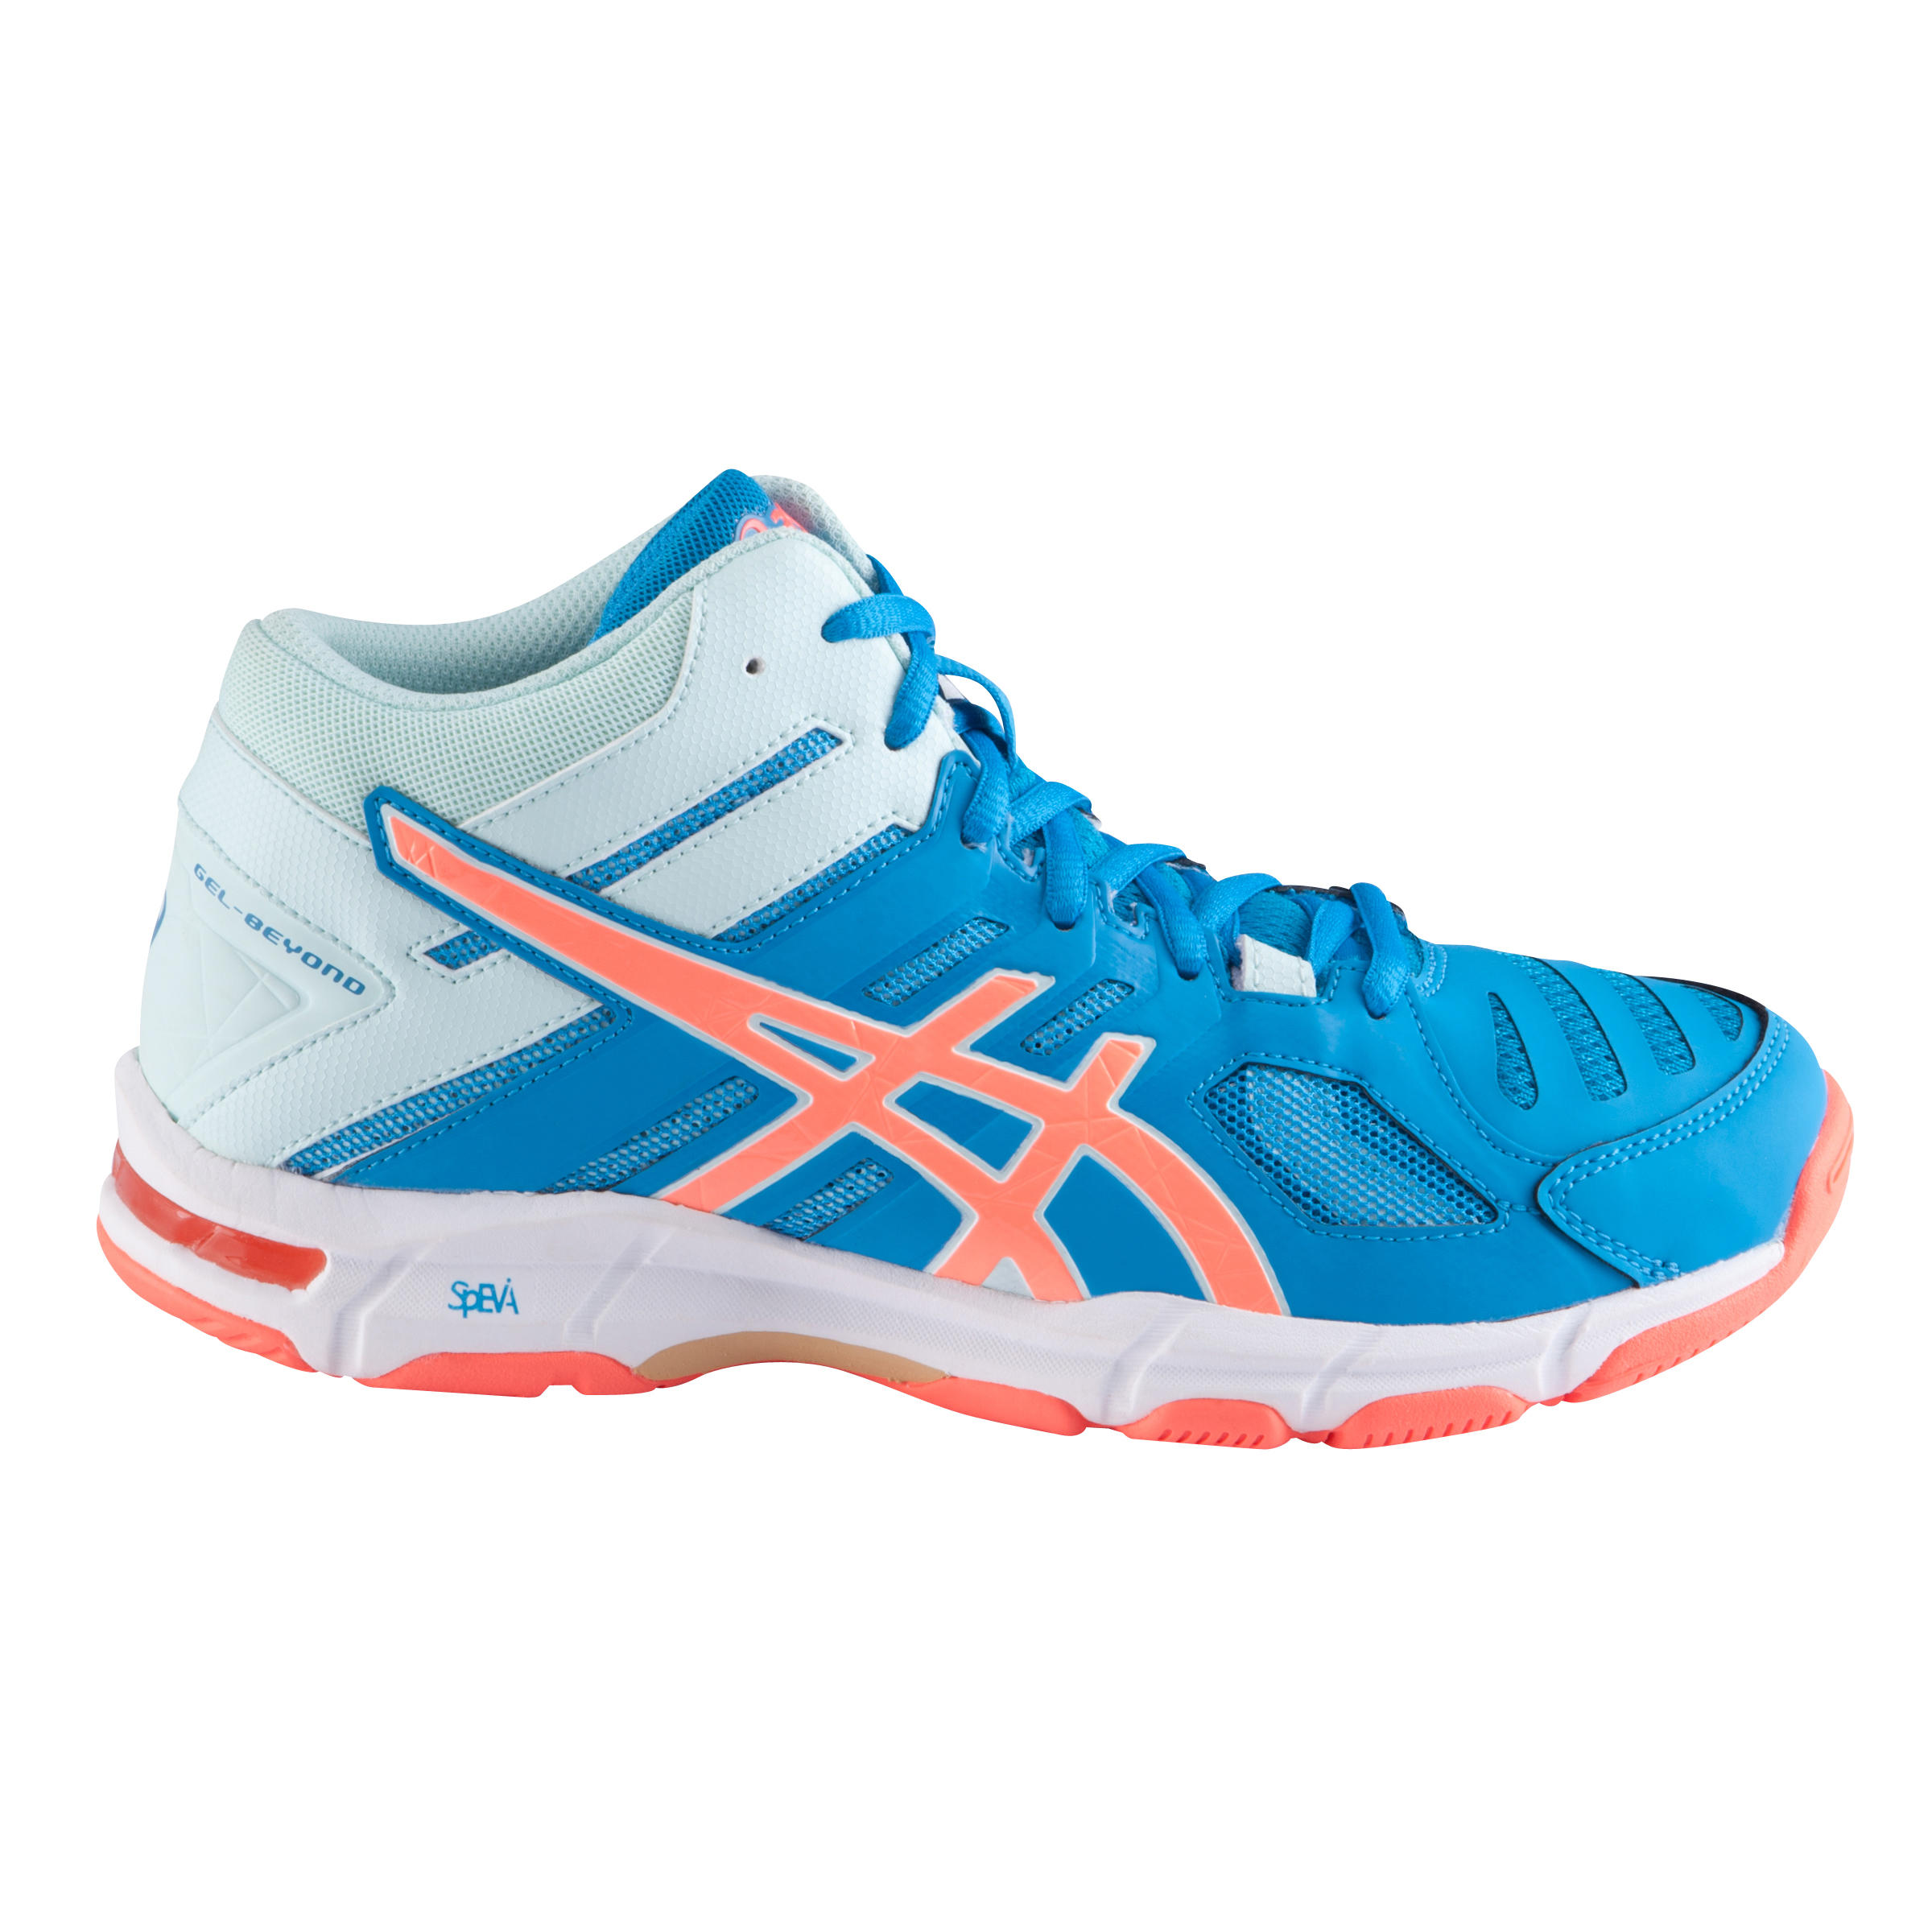 Chaussures de volley ball femme Gel Beyond 5 bleues jewelflash coral